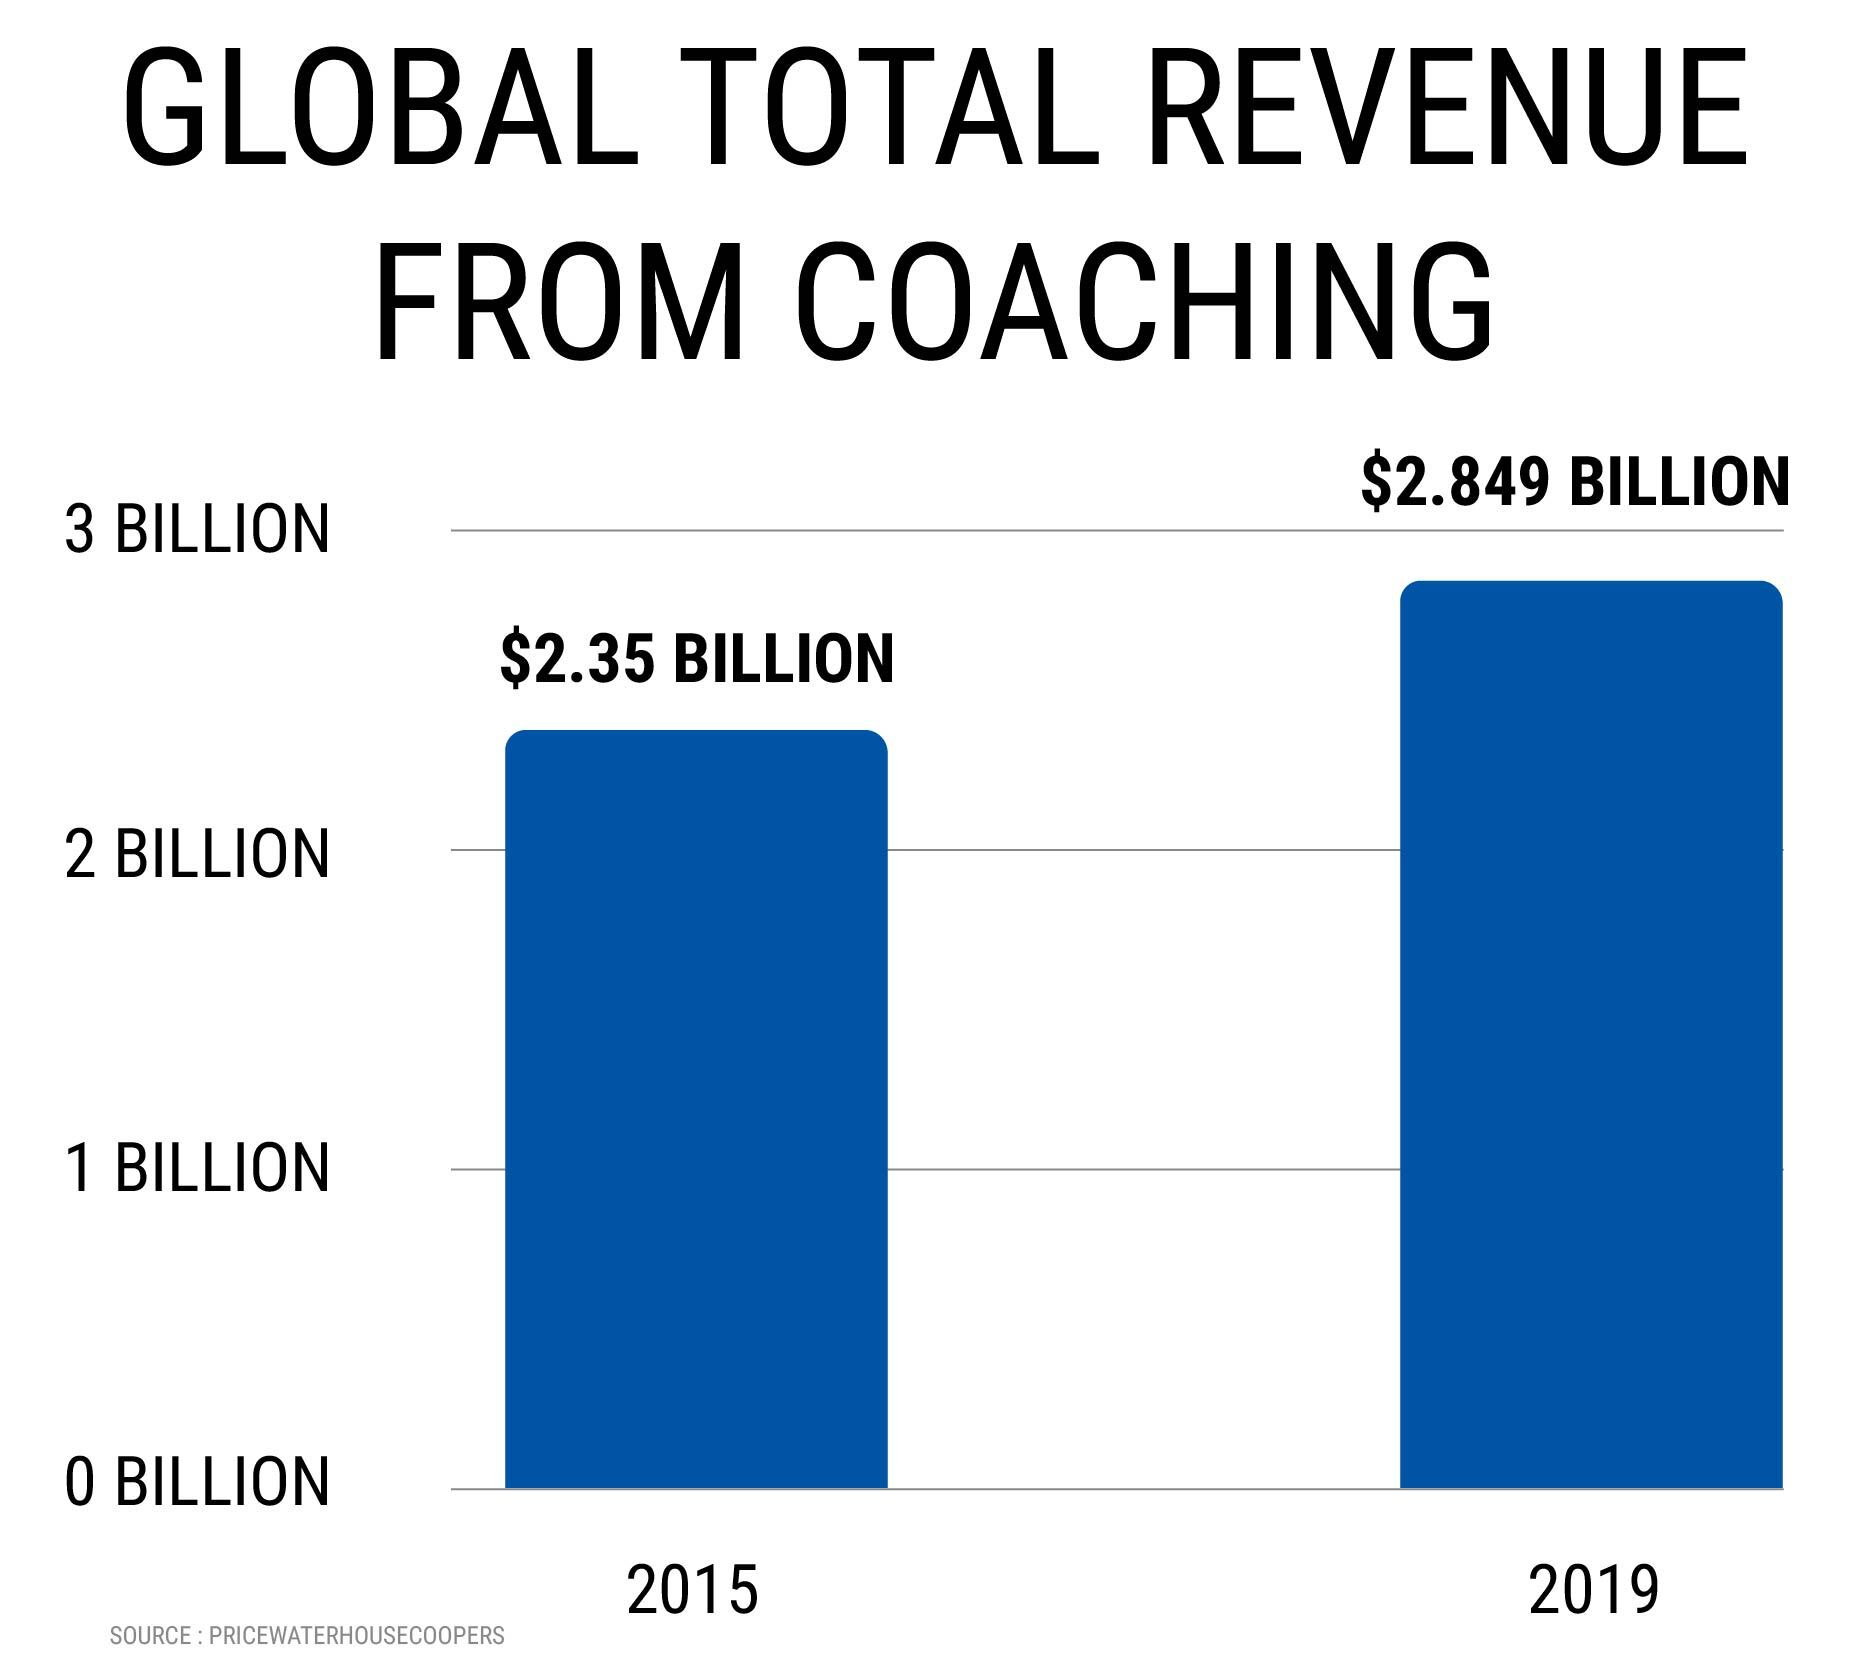 GLOBAL TOTAL REVENUE FROM COACHING